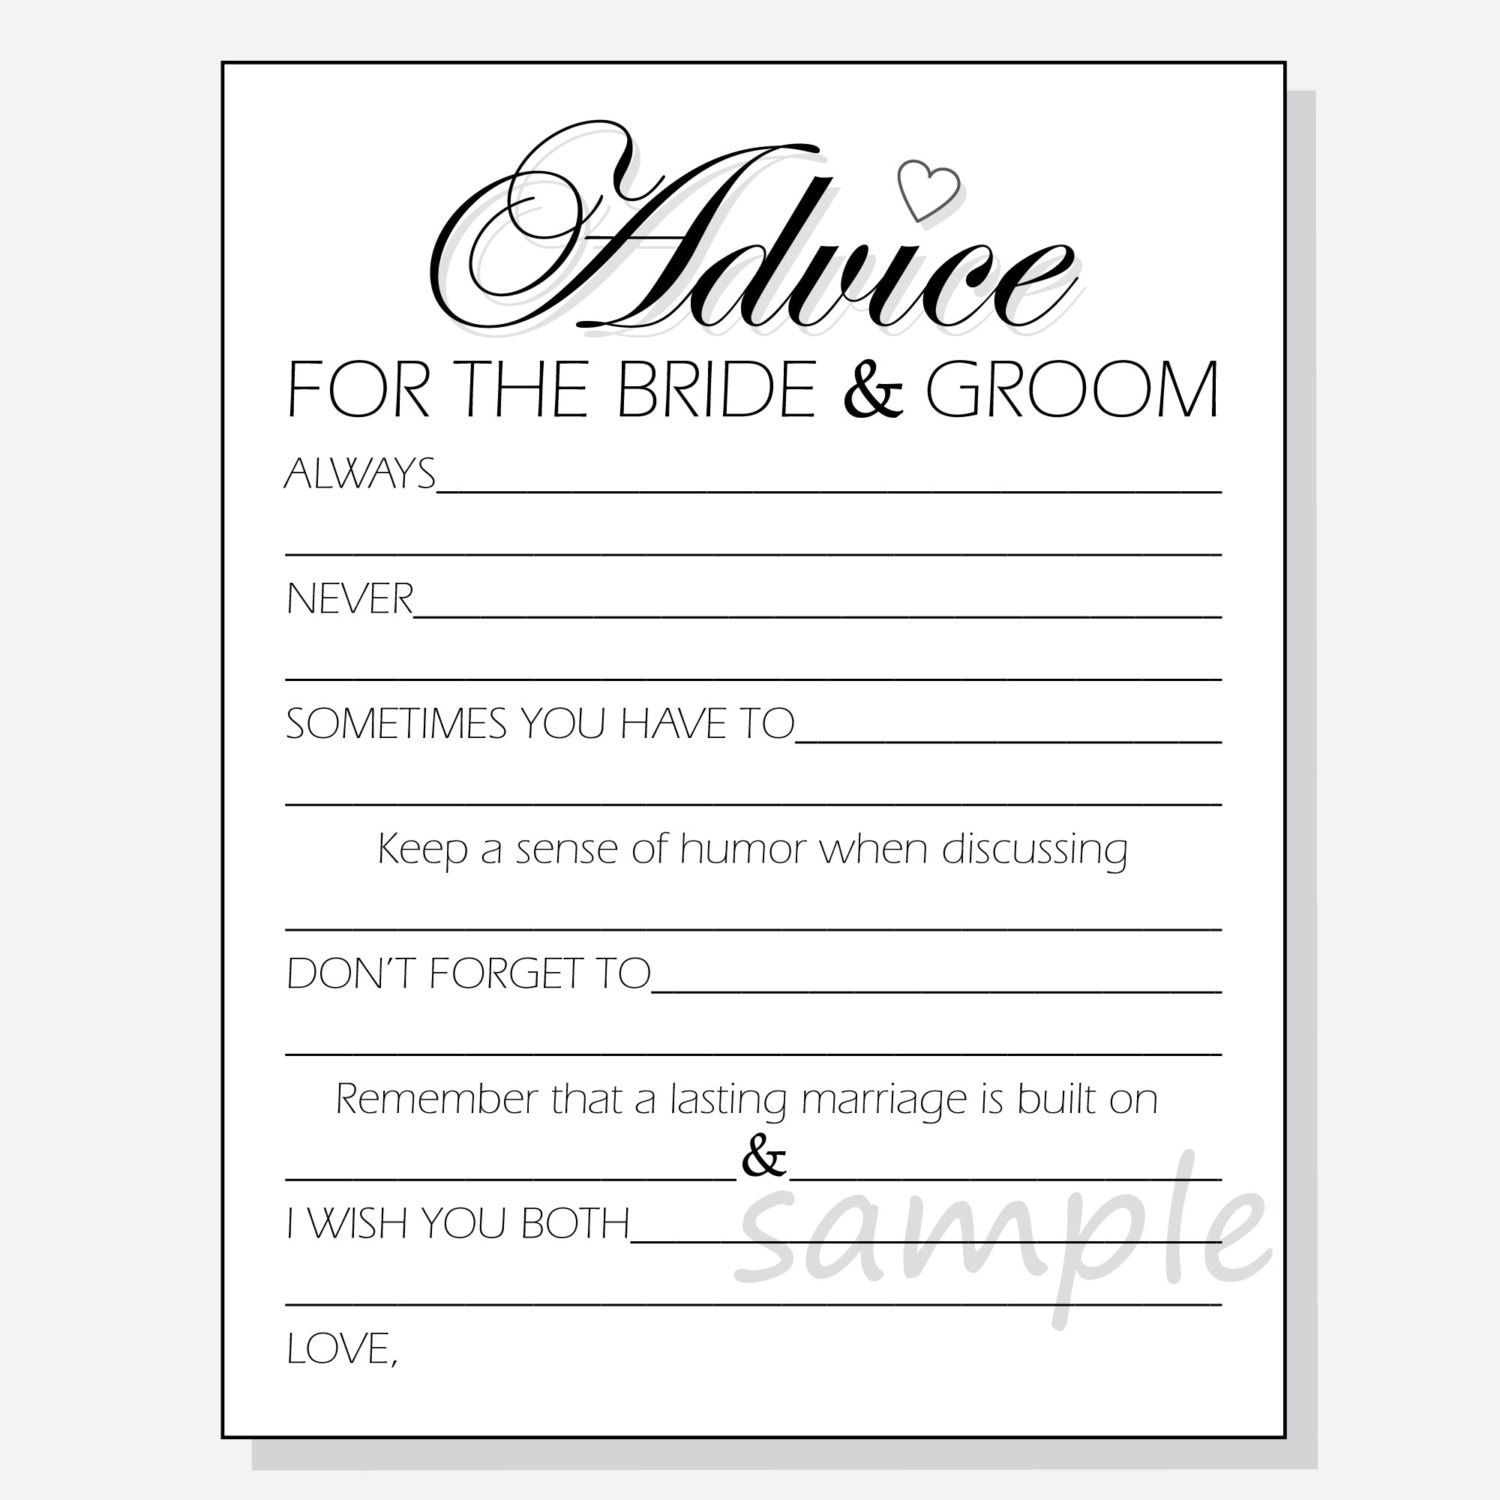 diy advice for the bride groom printable cards for a shower